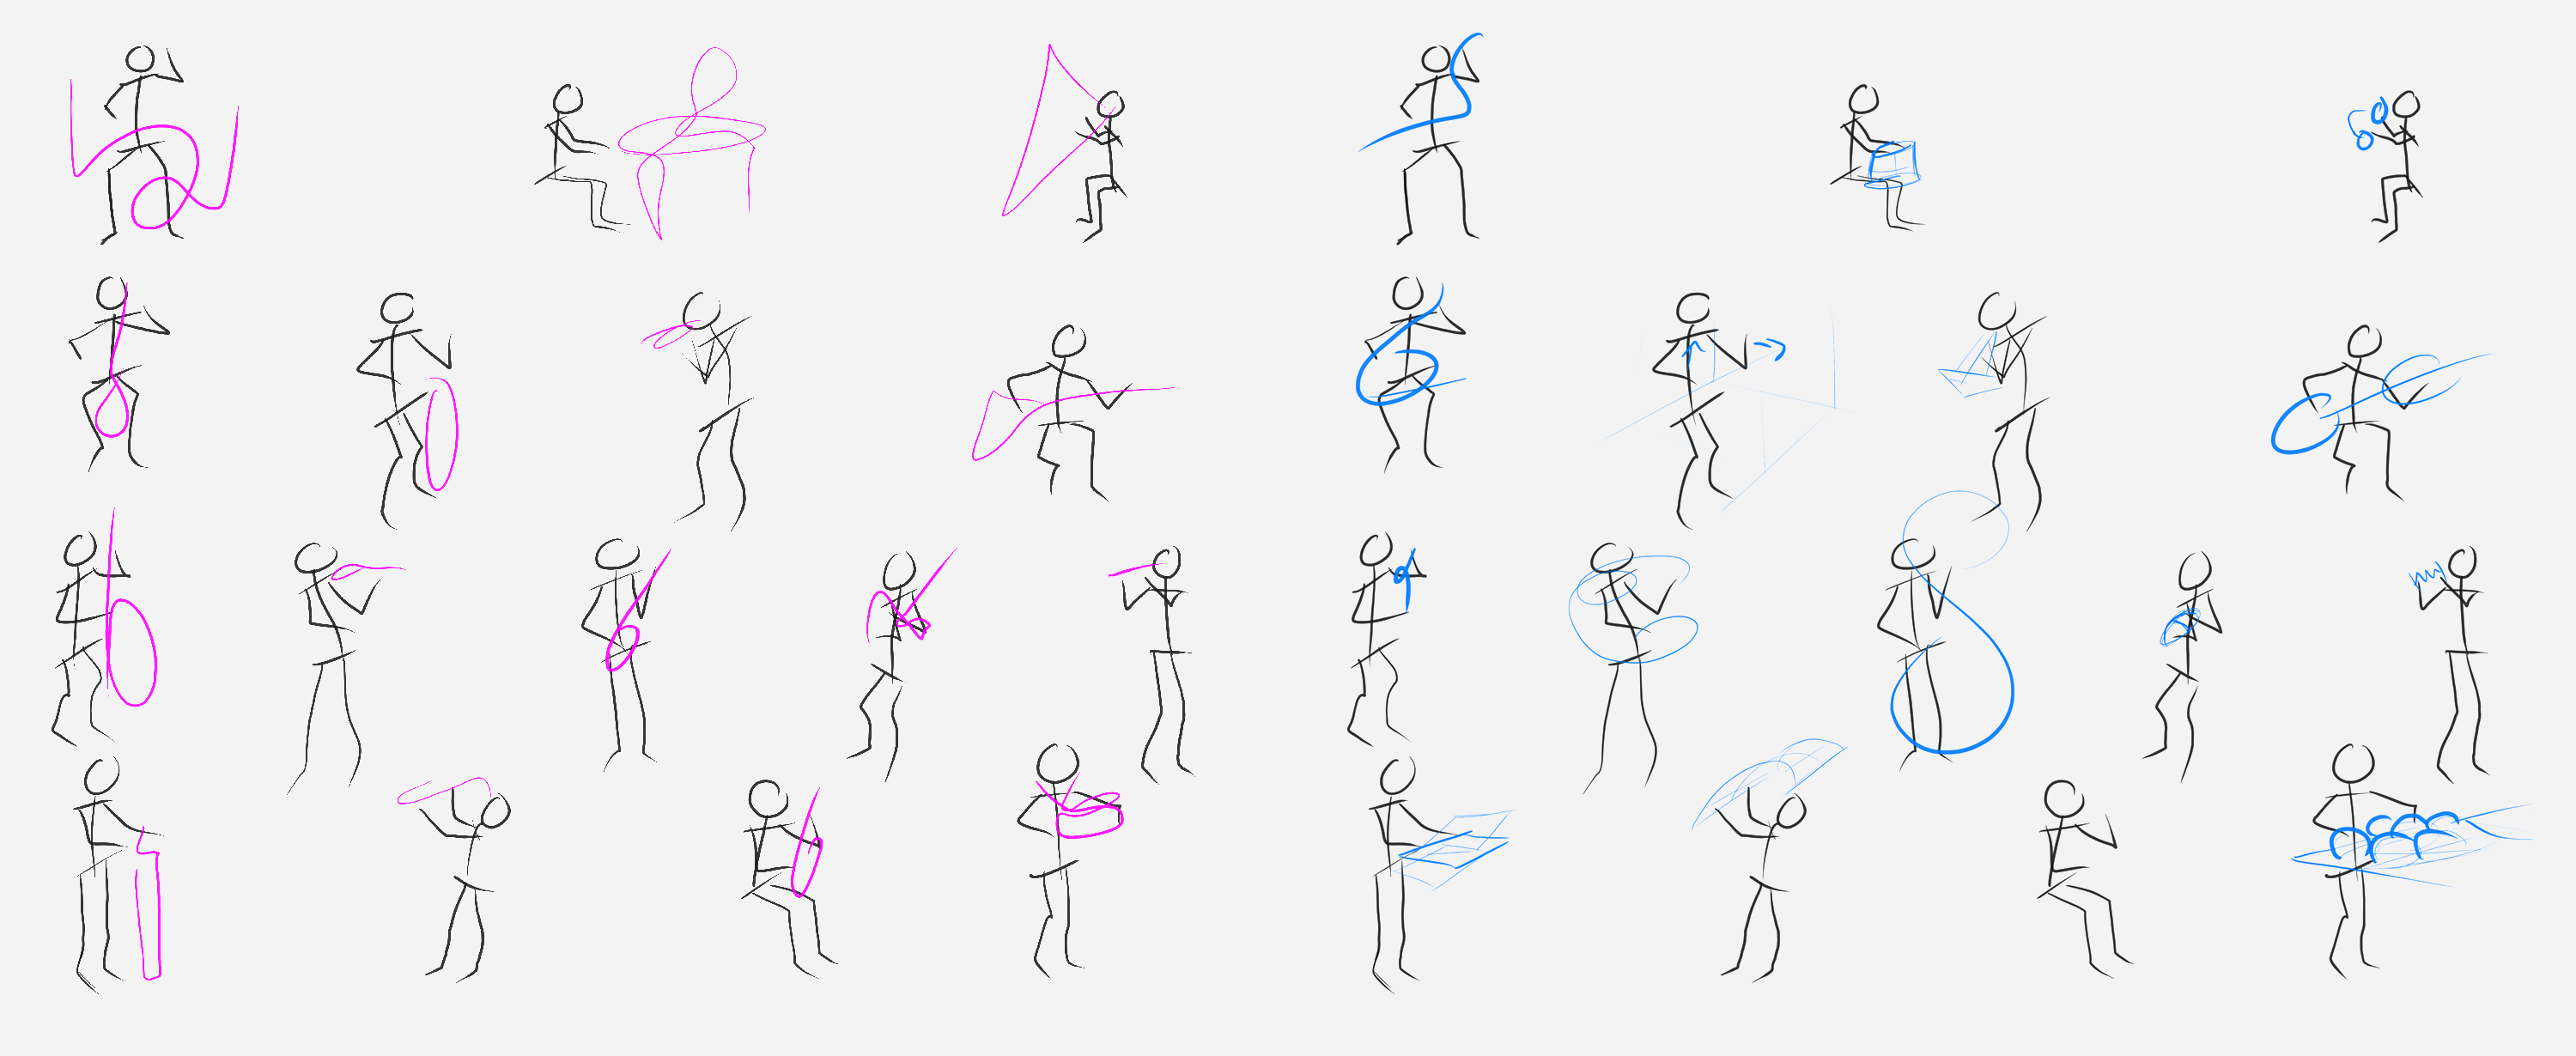 Figures of various musicians with abstracted instruments